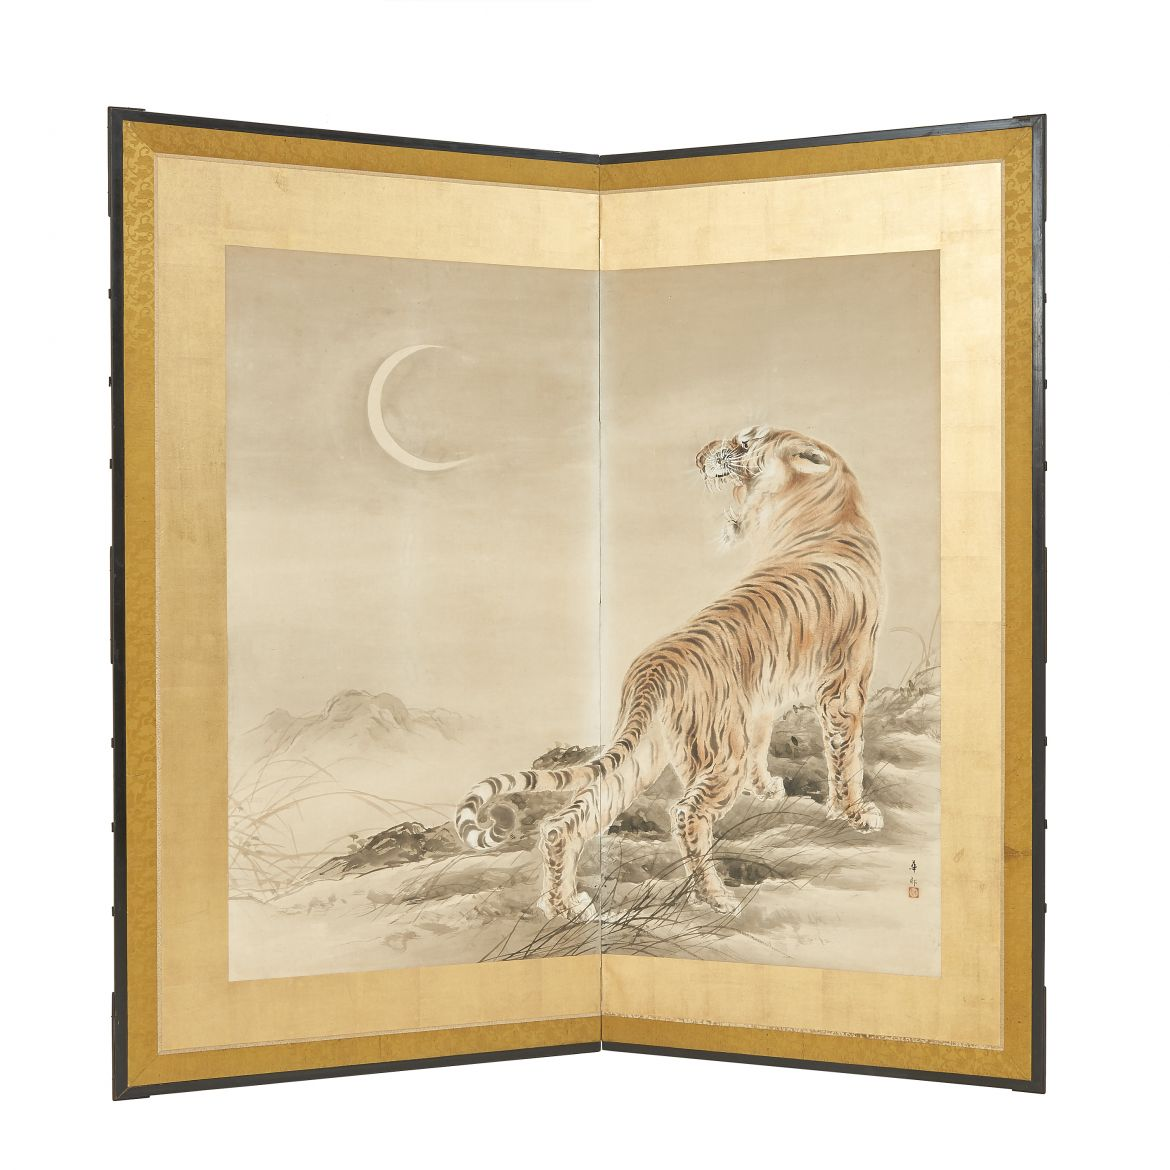 Painted Screen with a Tiger